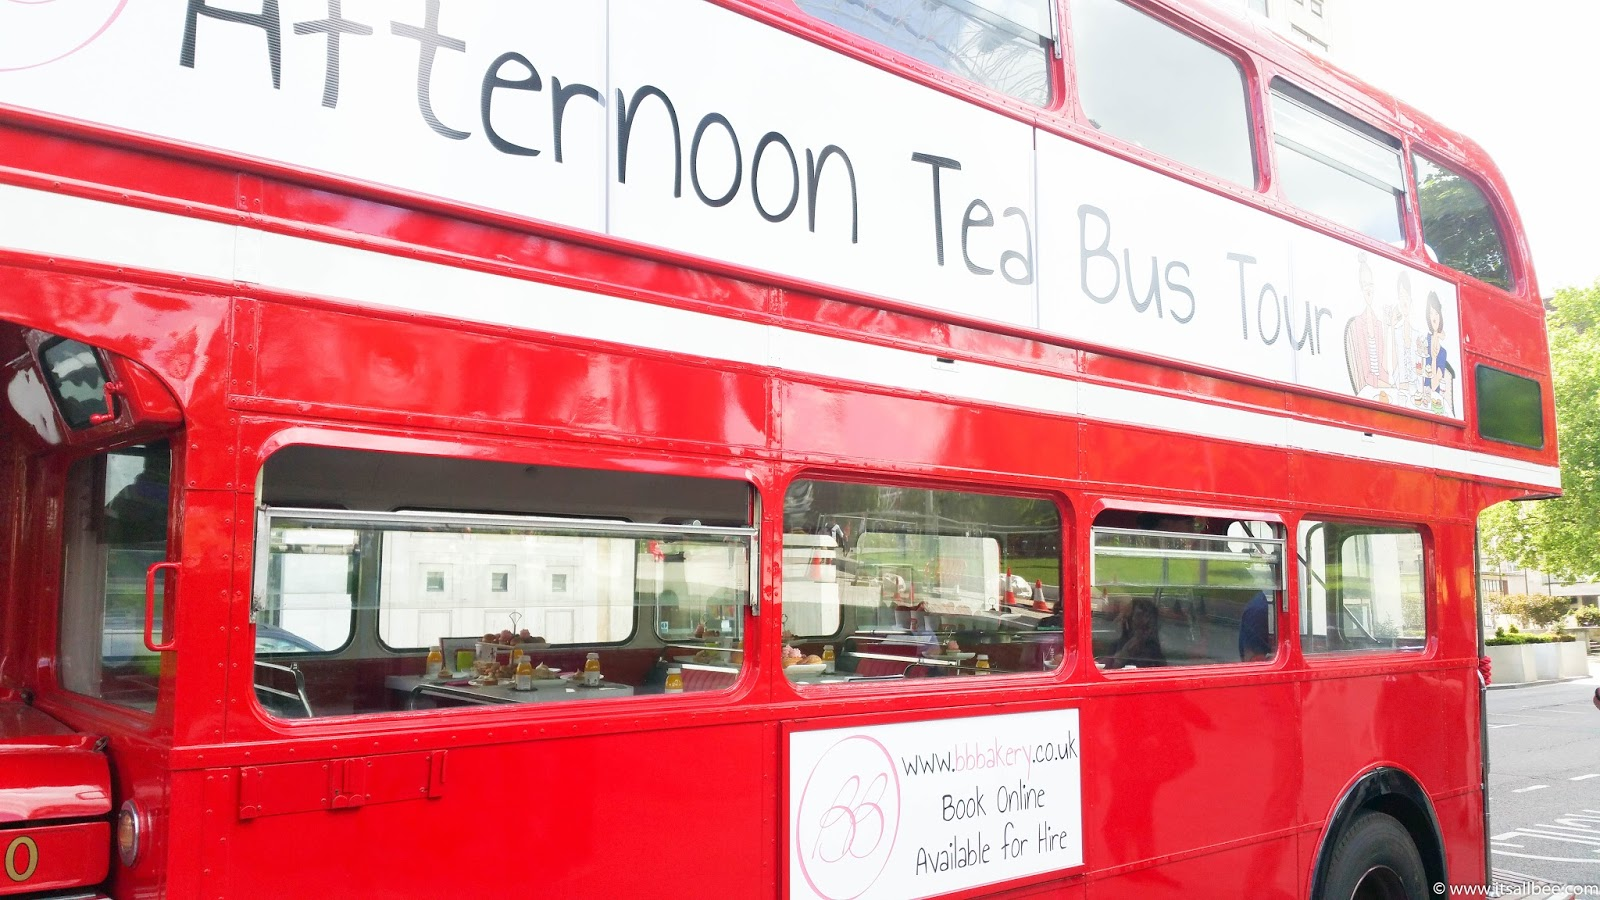 A Touch of Vintage | BB Bakery Afternoon Tea On A London Bus